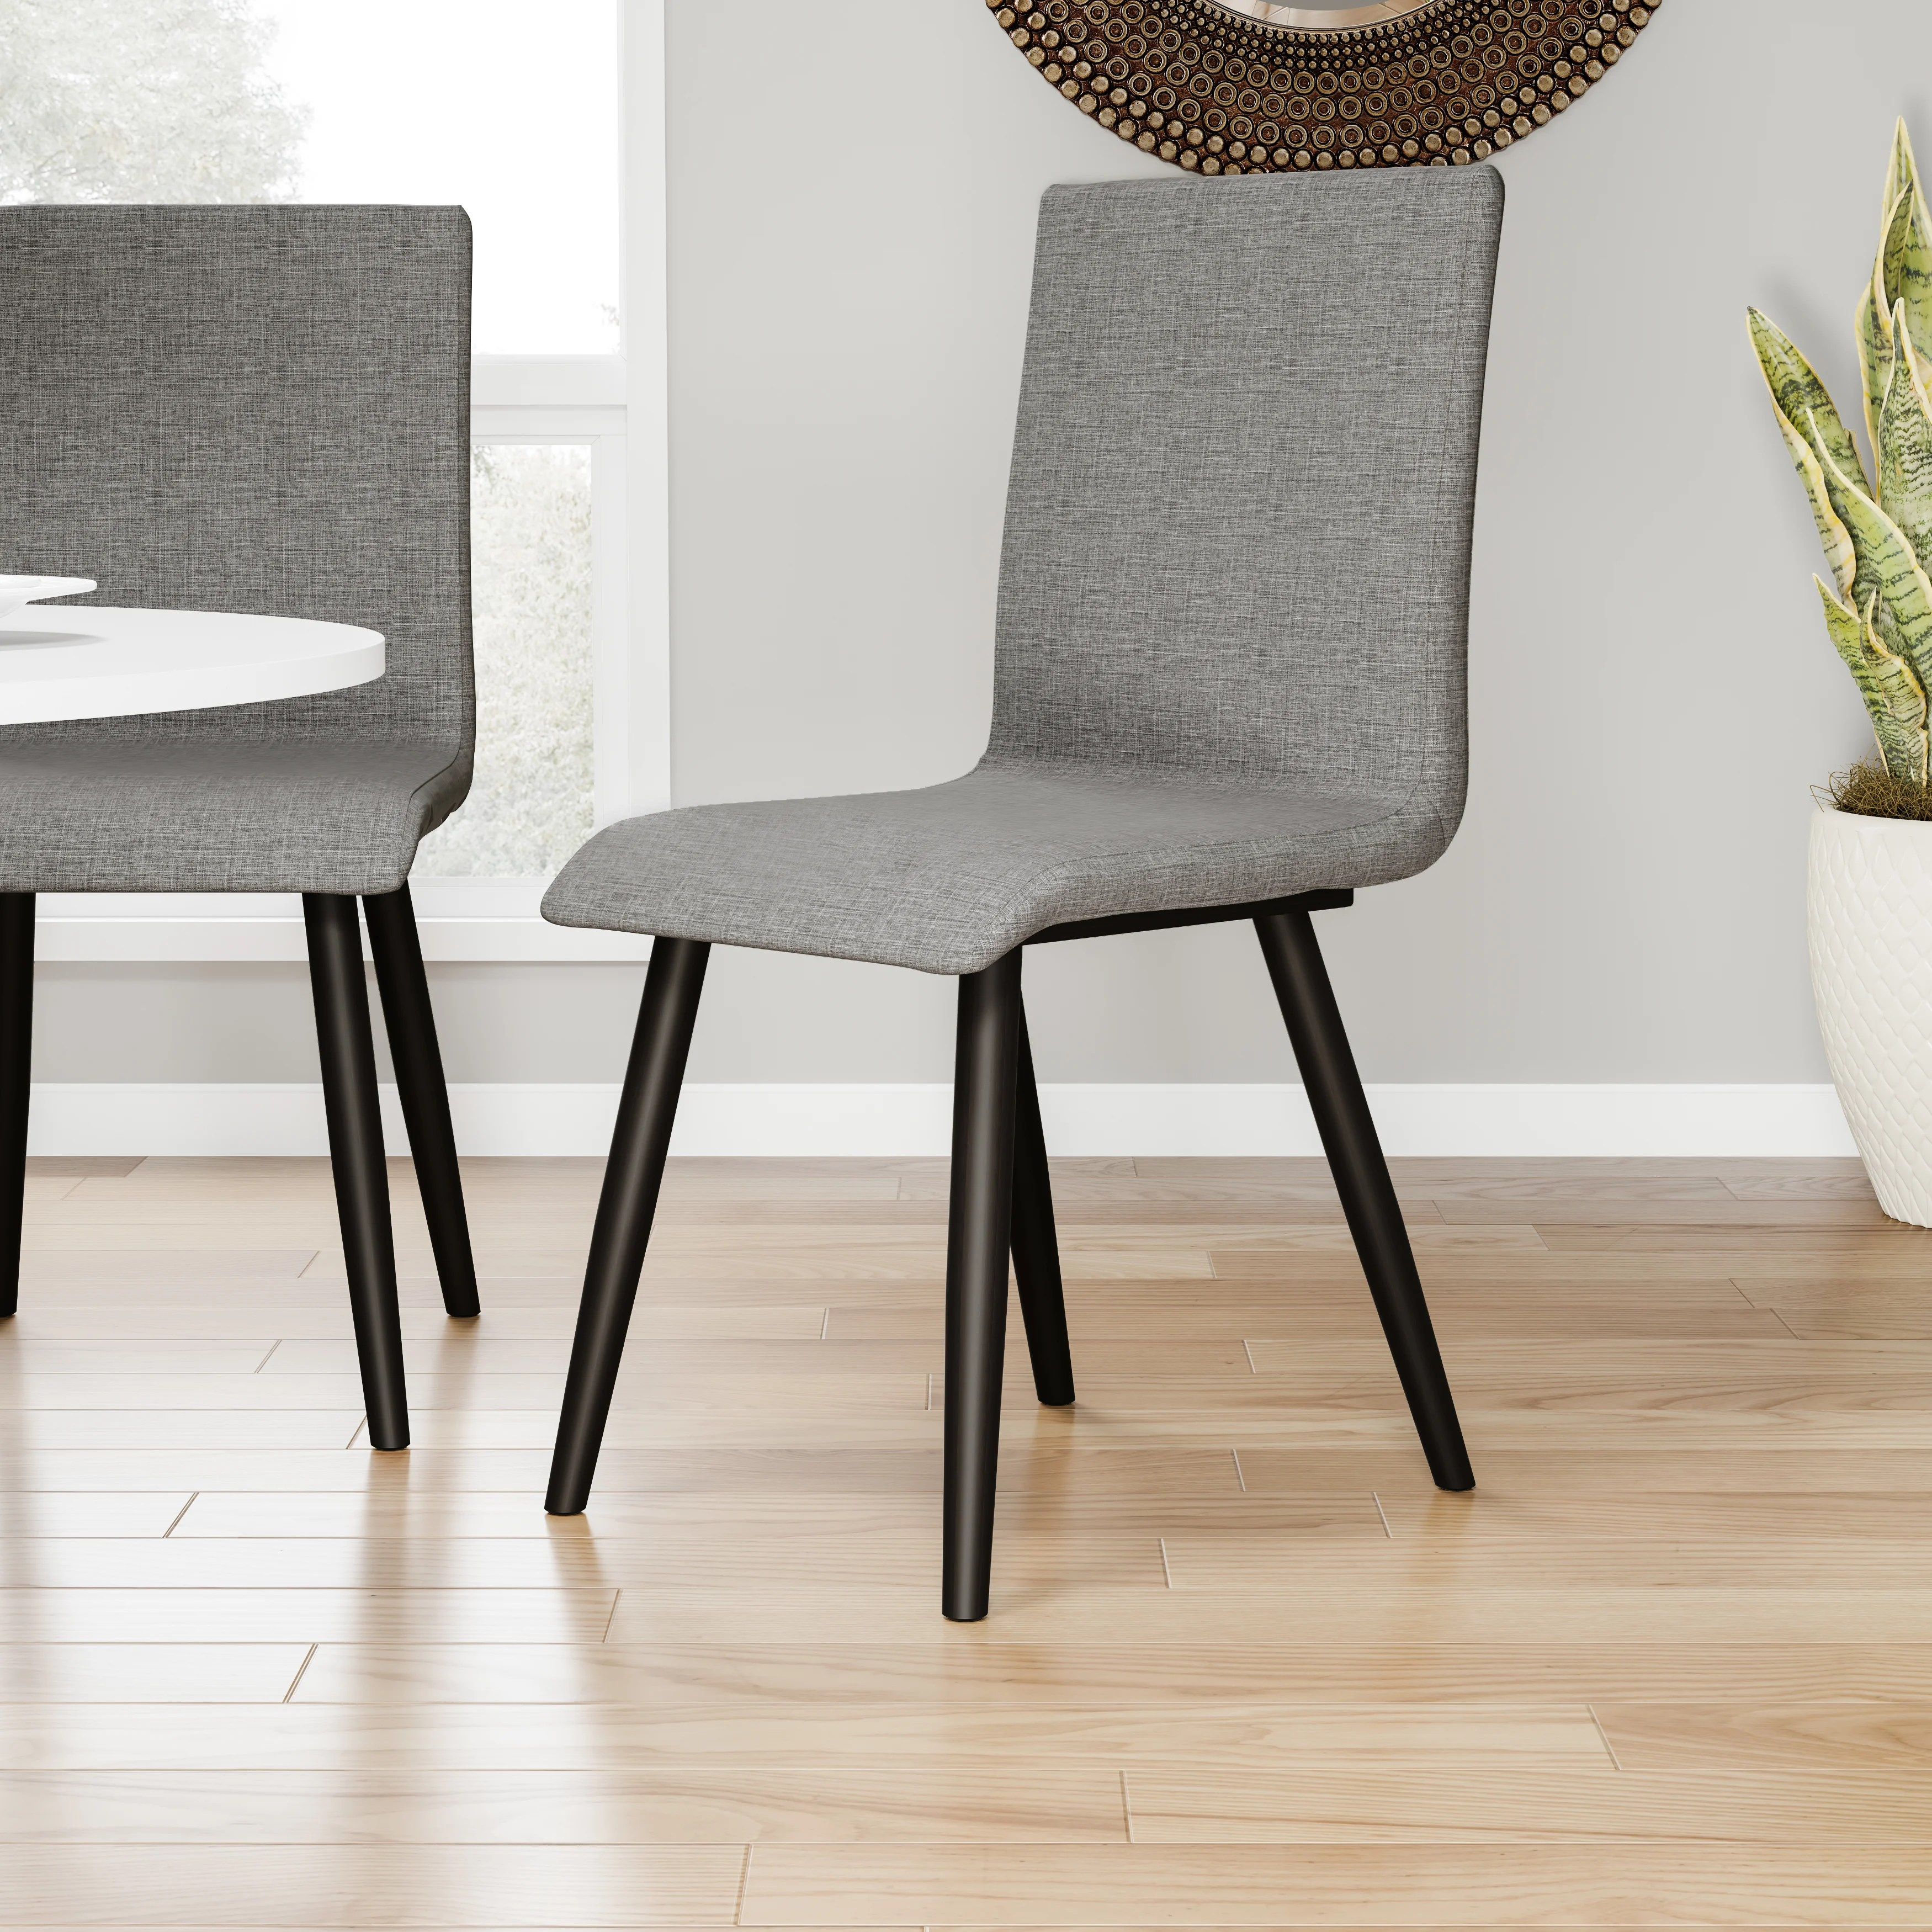 gray upholstered dining chairs egg shaped wicker chair shop carson carrington odda mid century modern style grey set of 2 17 w x 21 1 d 36 h on sale free shipping today